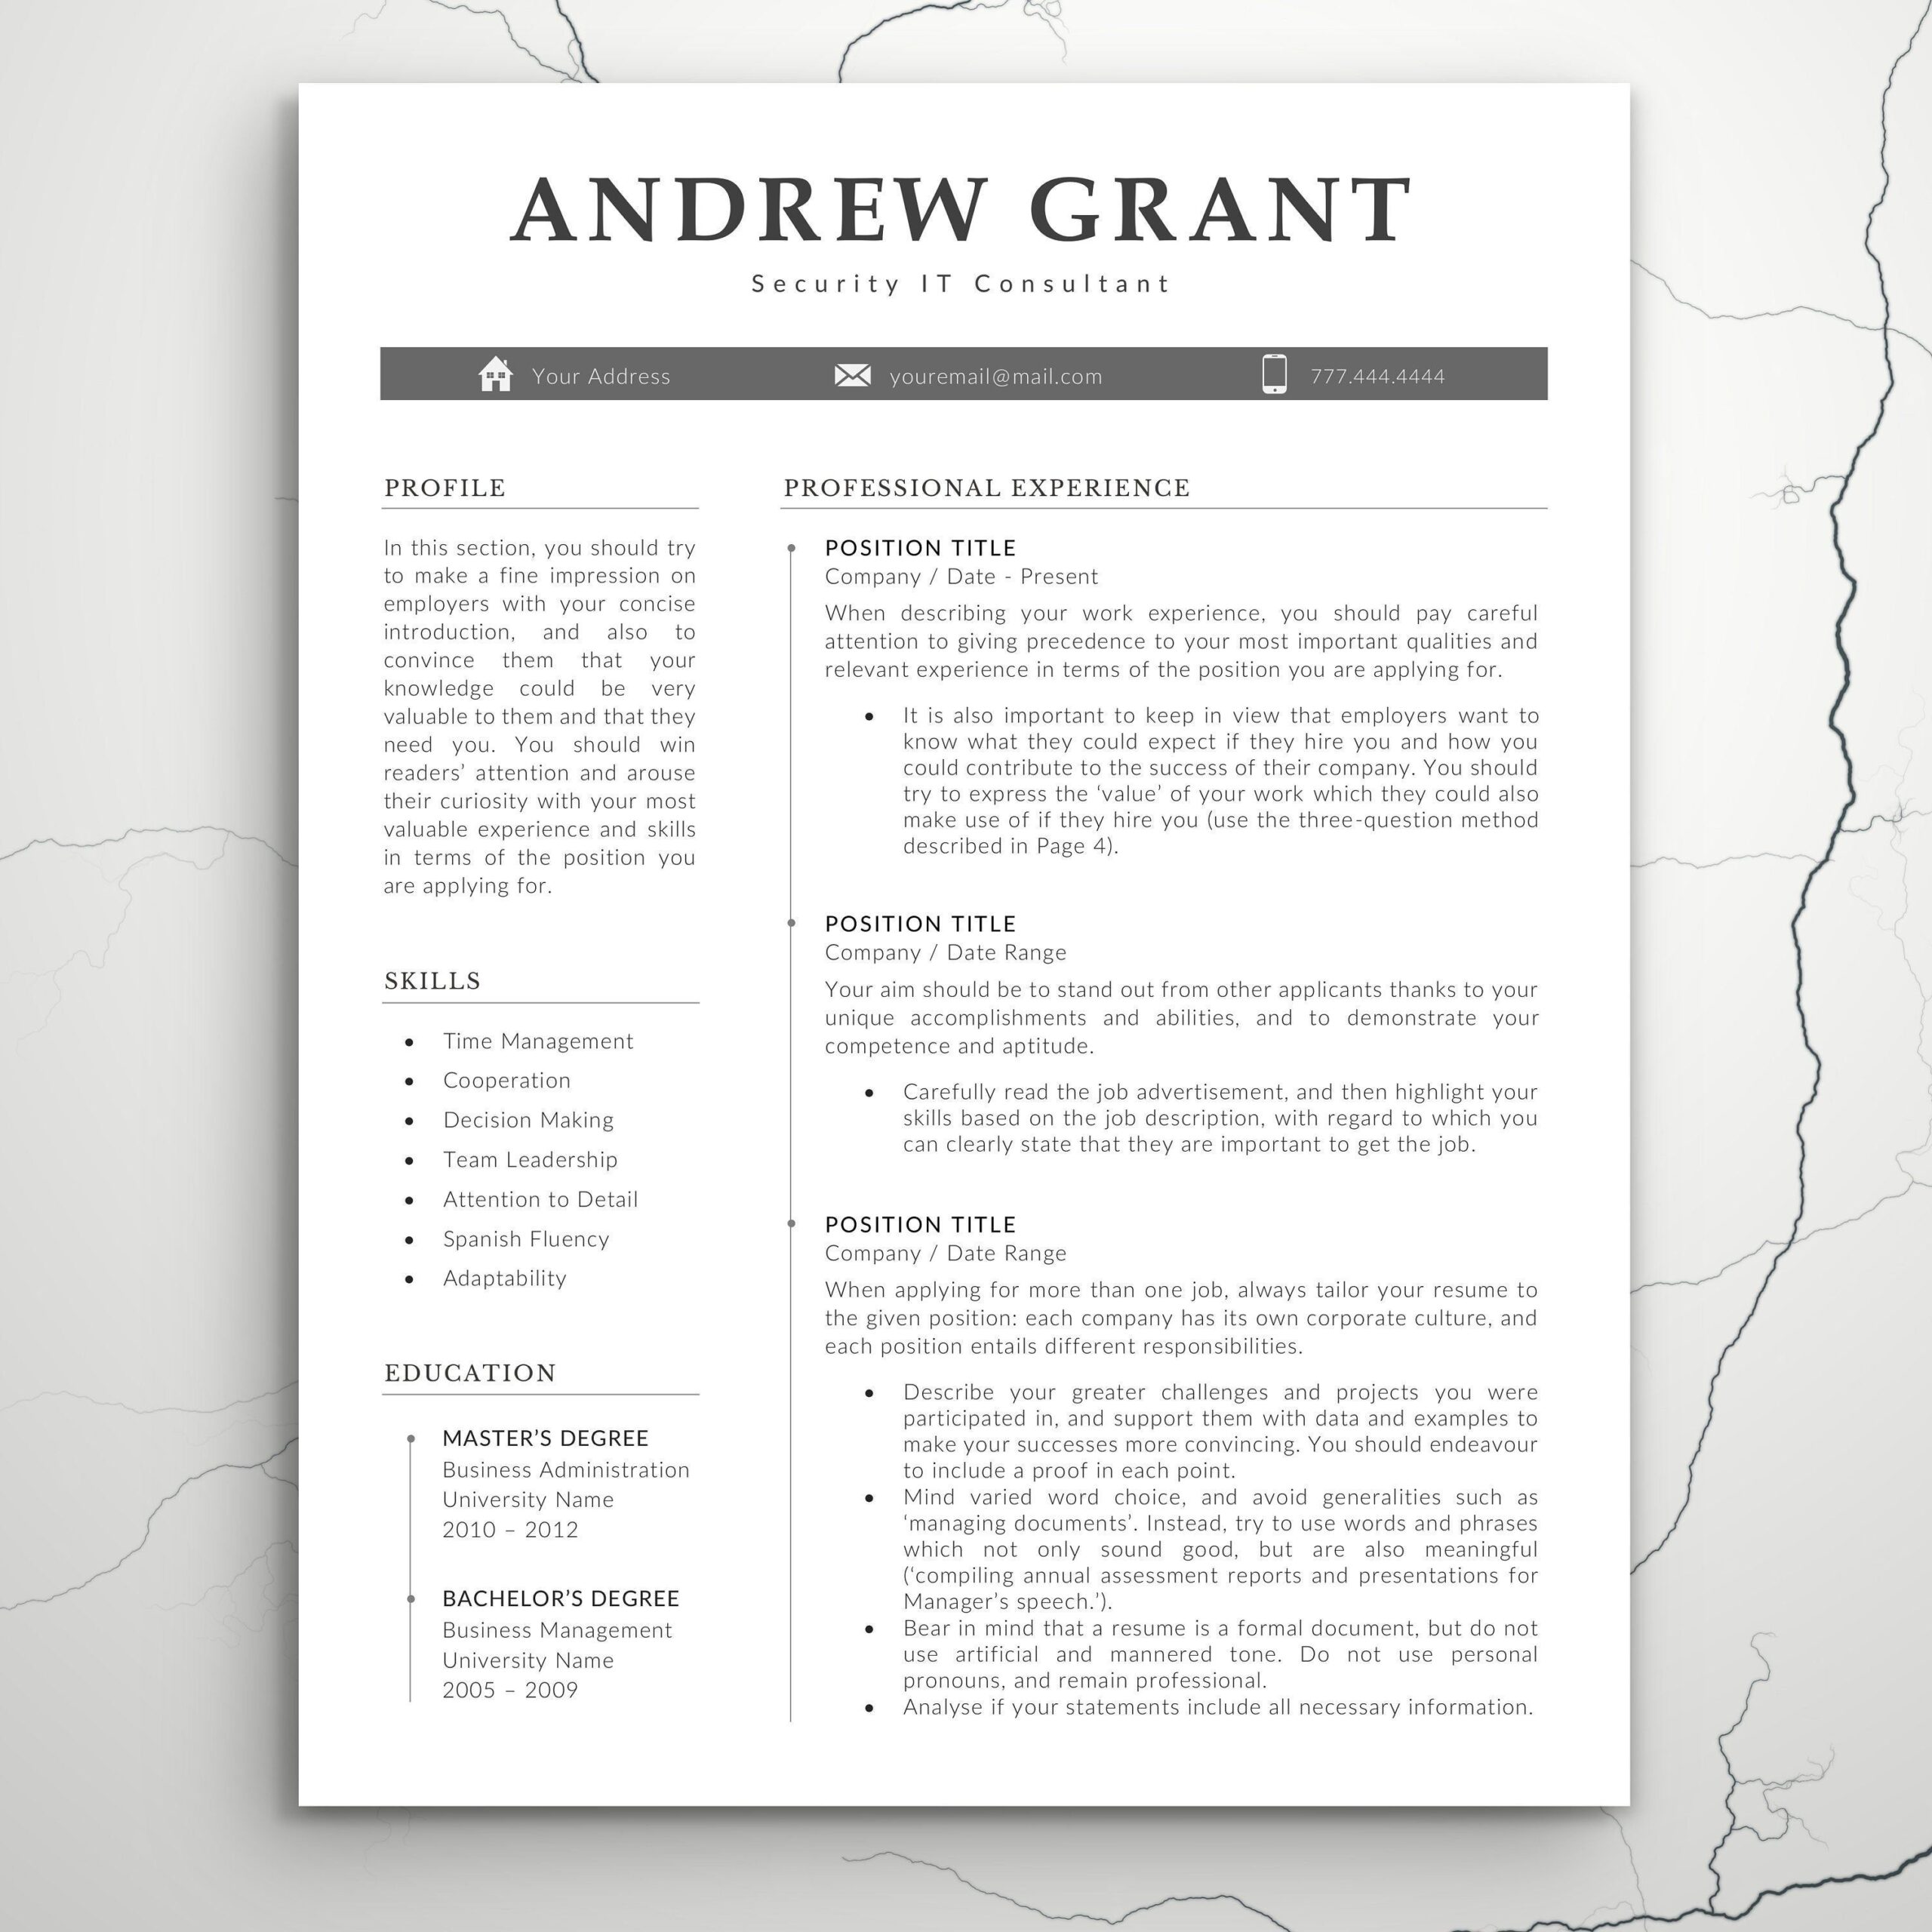 resume template word modern etsy teacher should pay for headline student federal Resume Should I Pay For A Resume